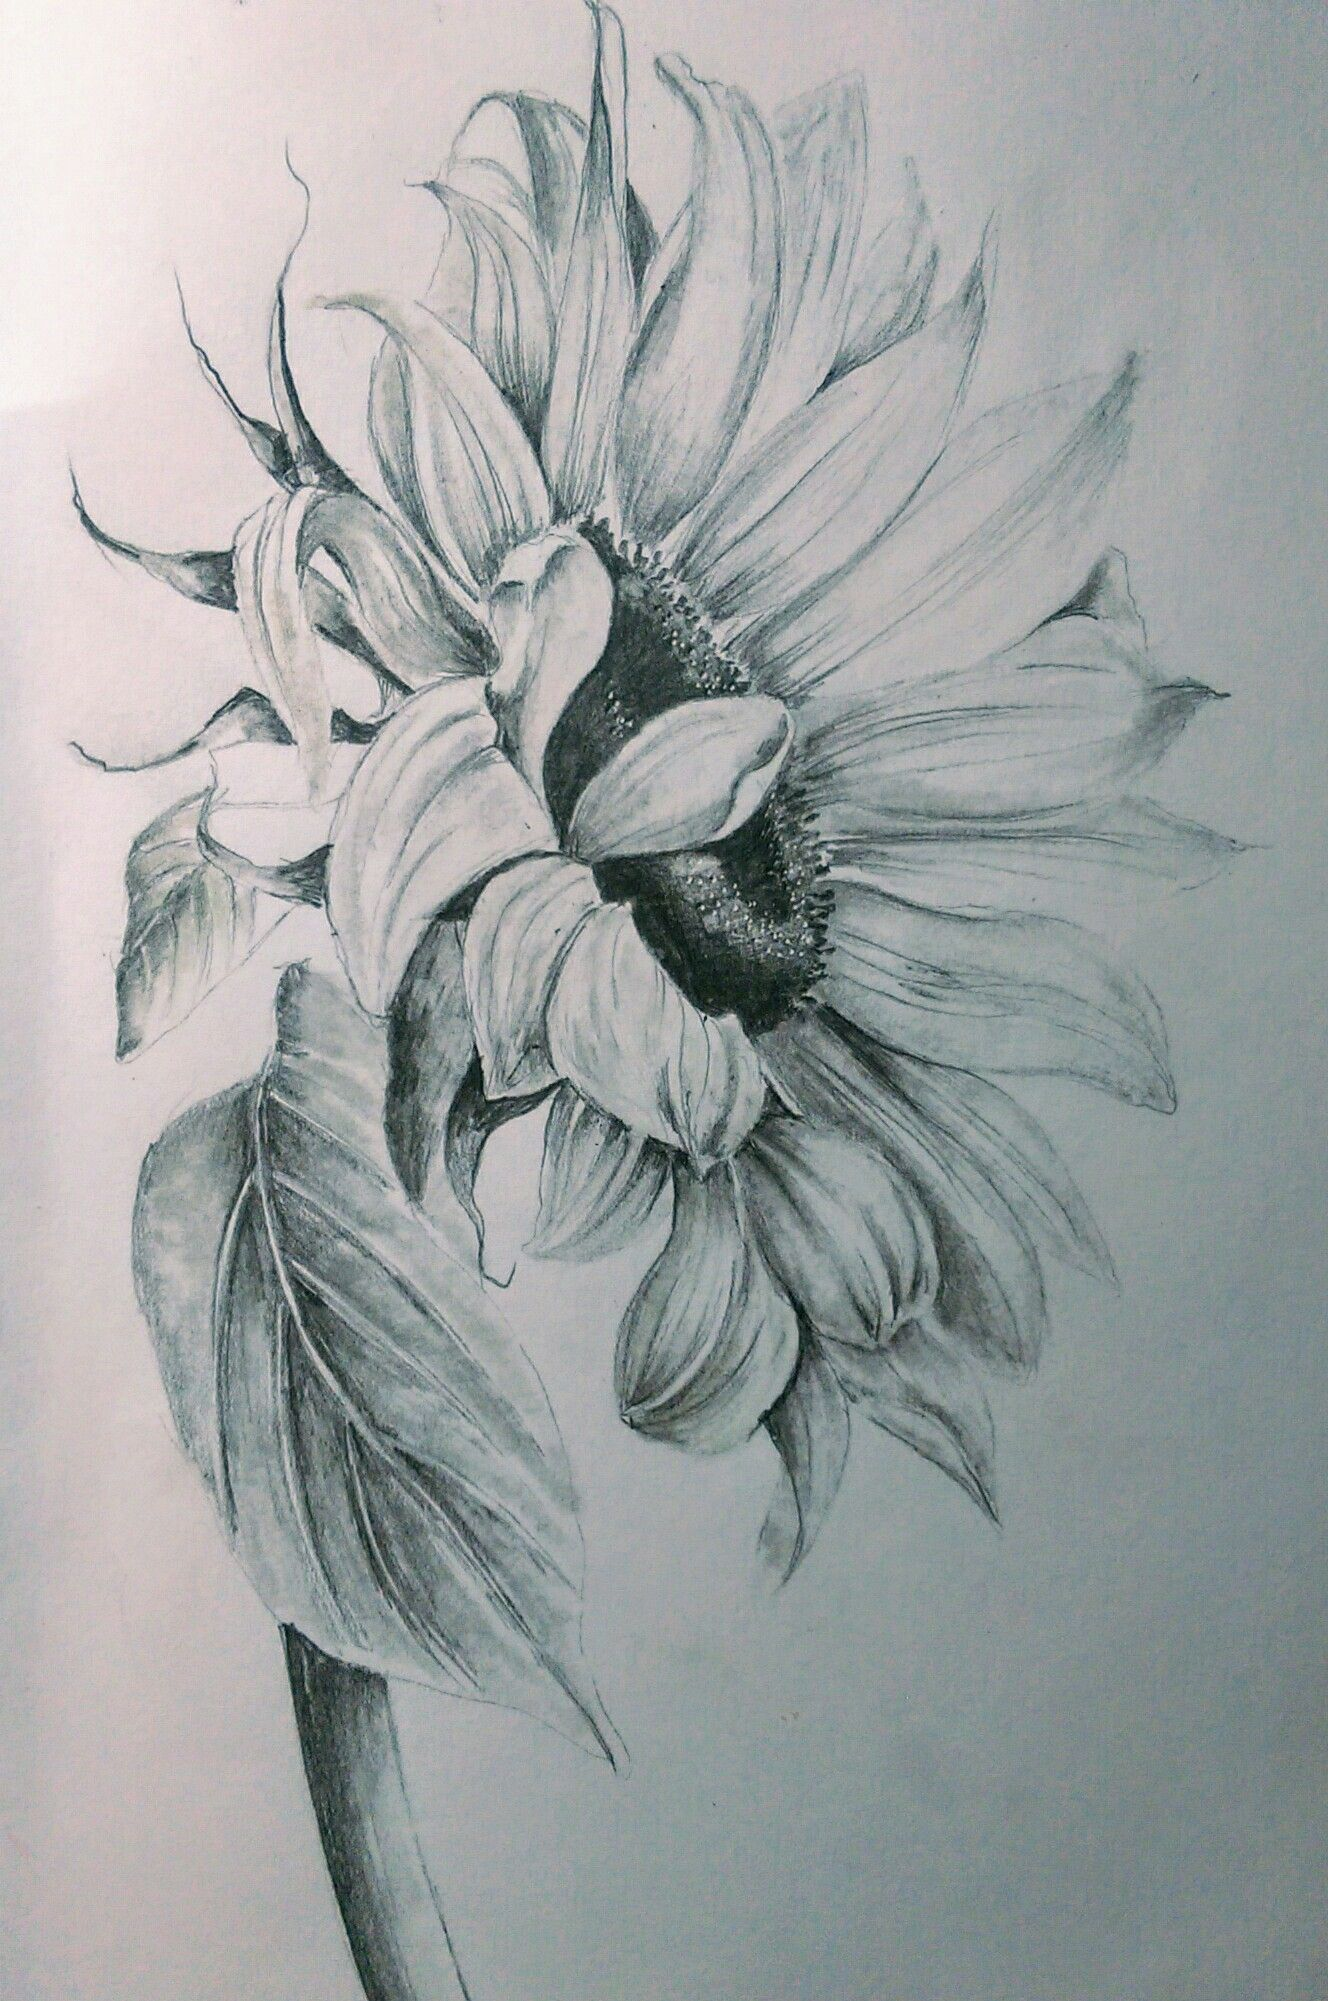 Pencils Sunflower drawing, Pencil drawings of flowers